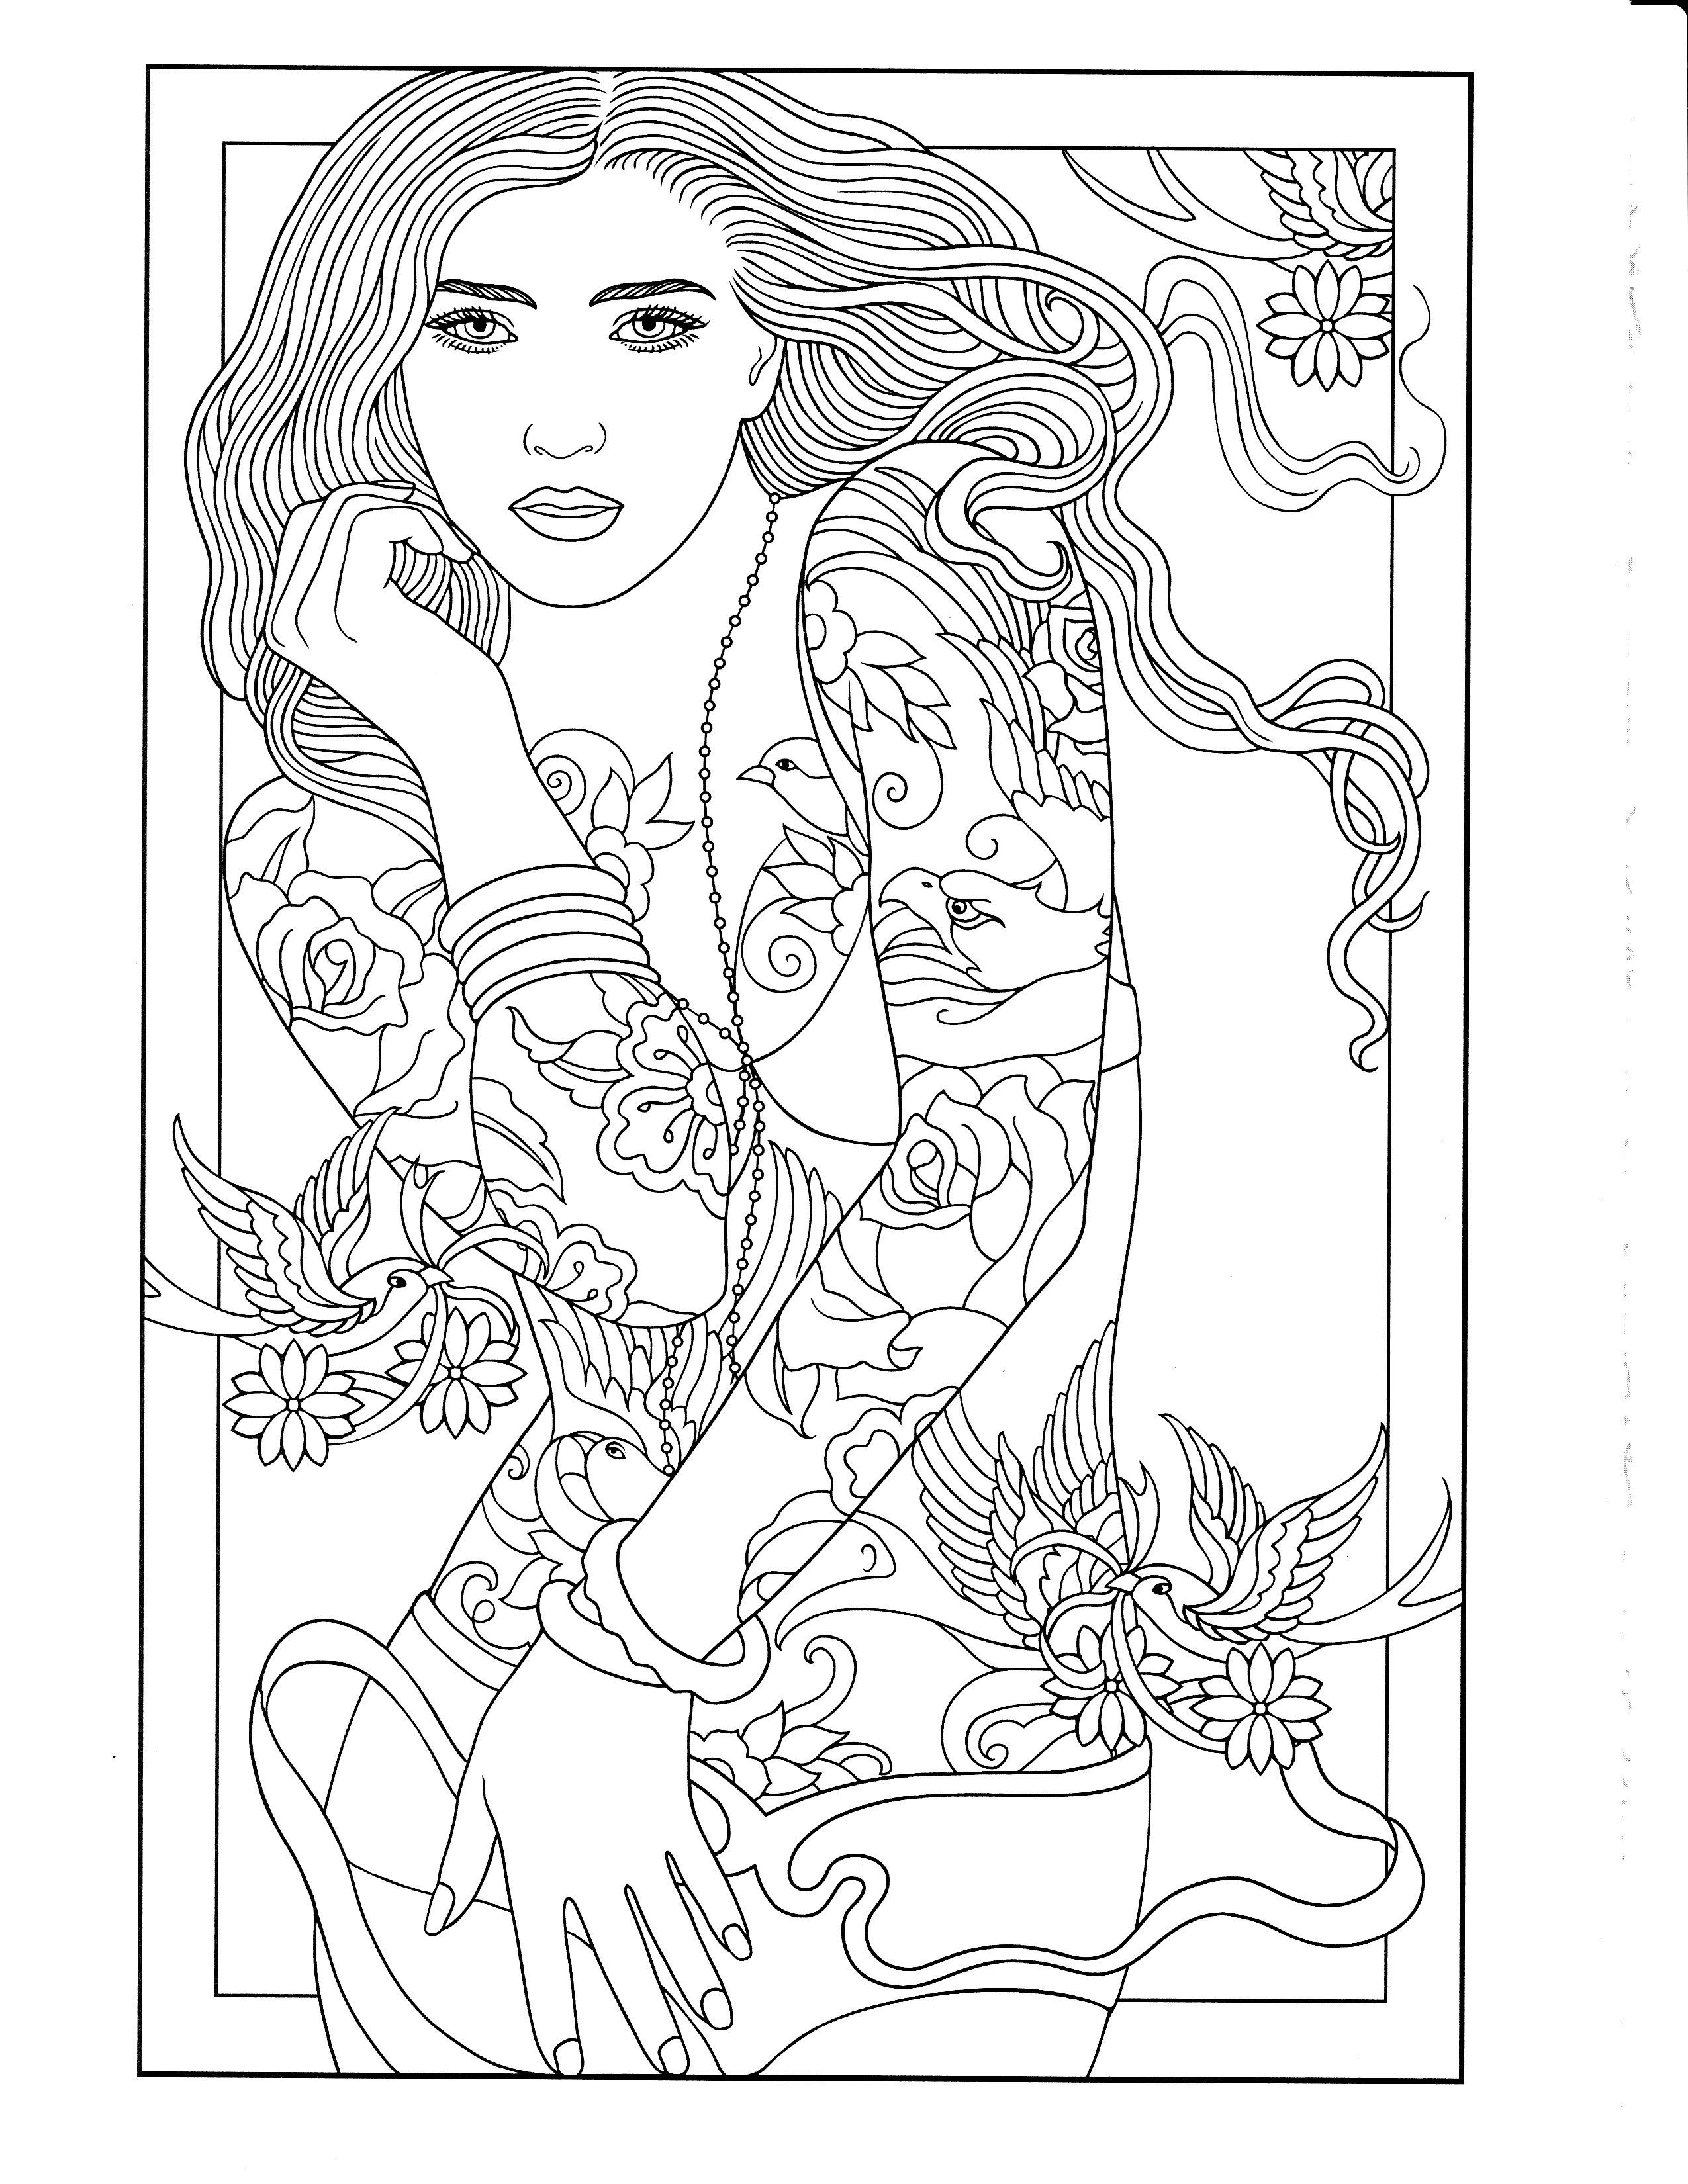 Printable Coloring Page Designs coloring books, Tattoo